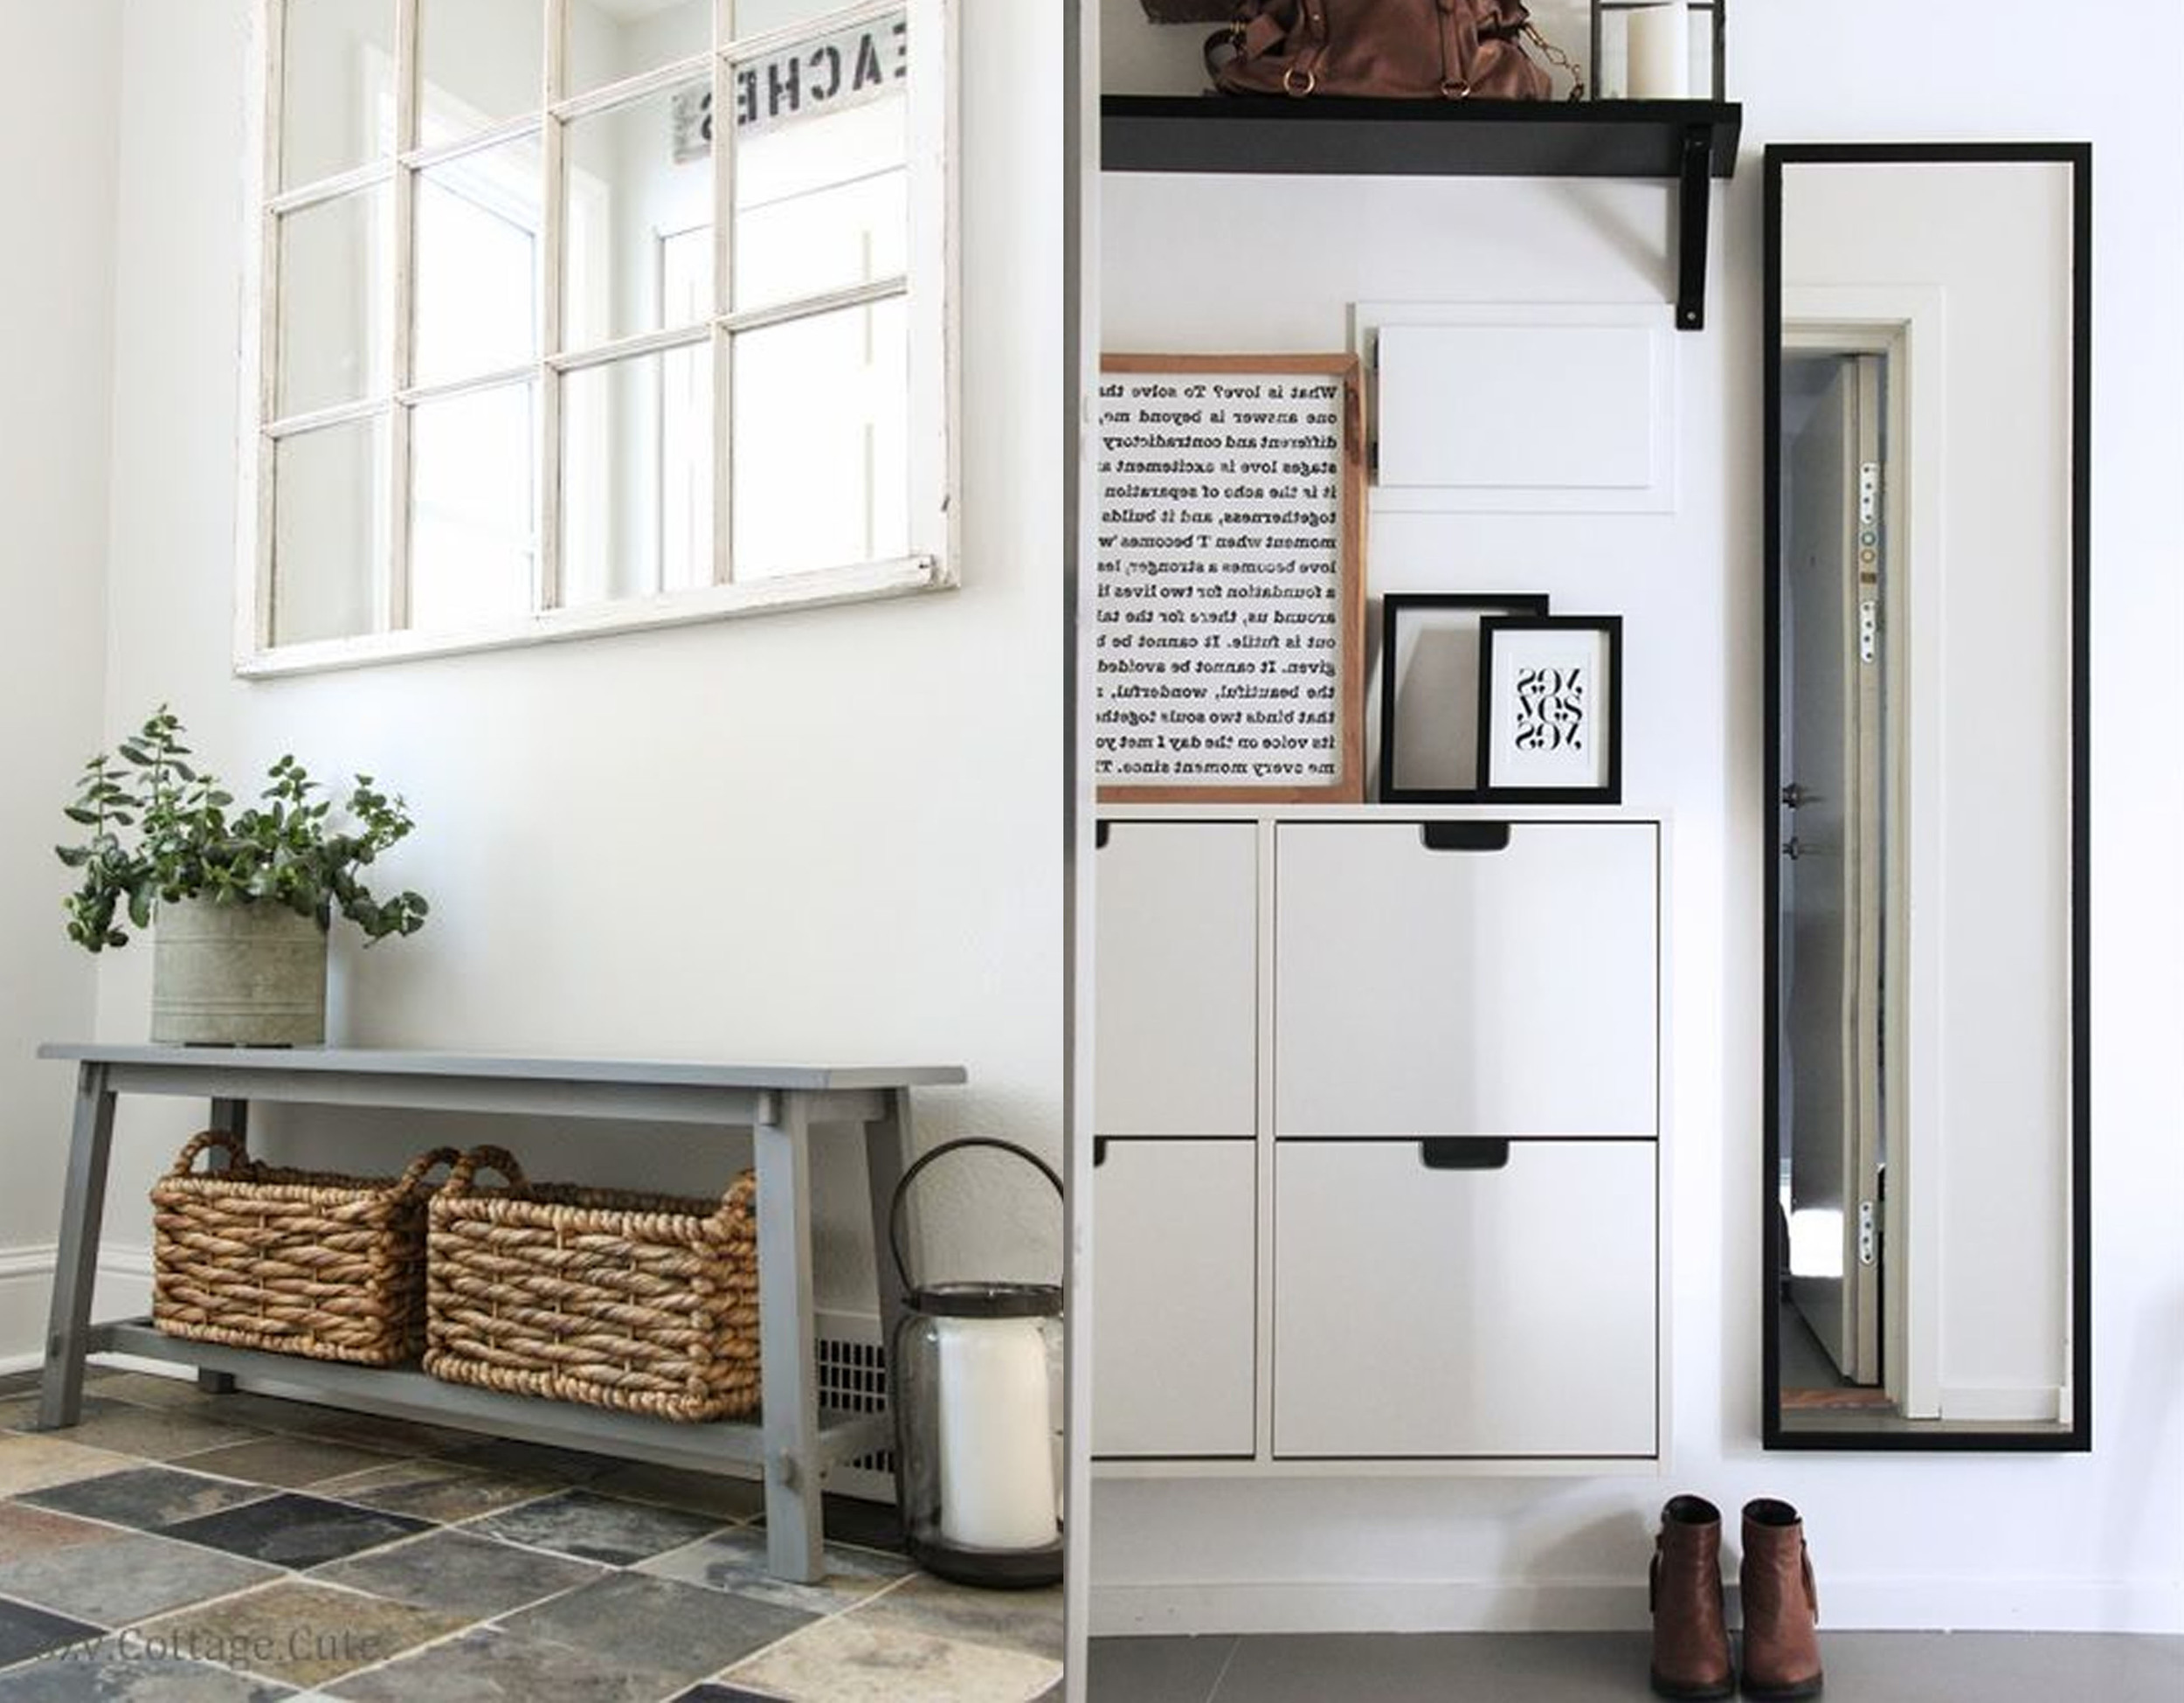 entrance is giving first impression - images Pinterest